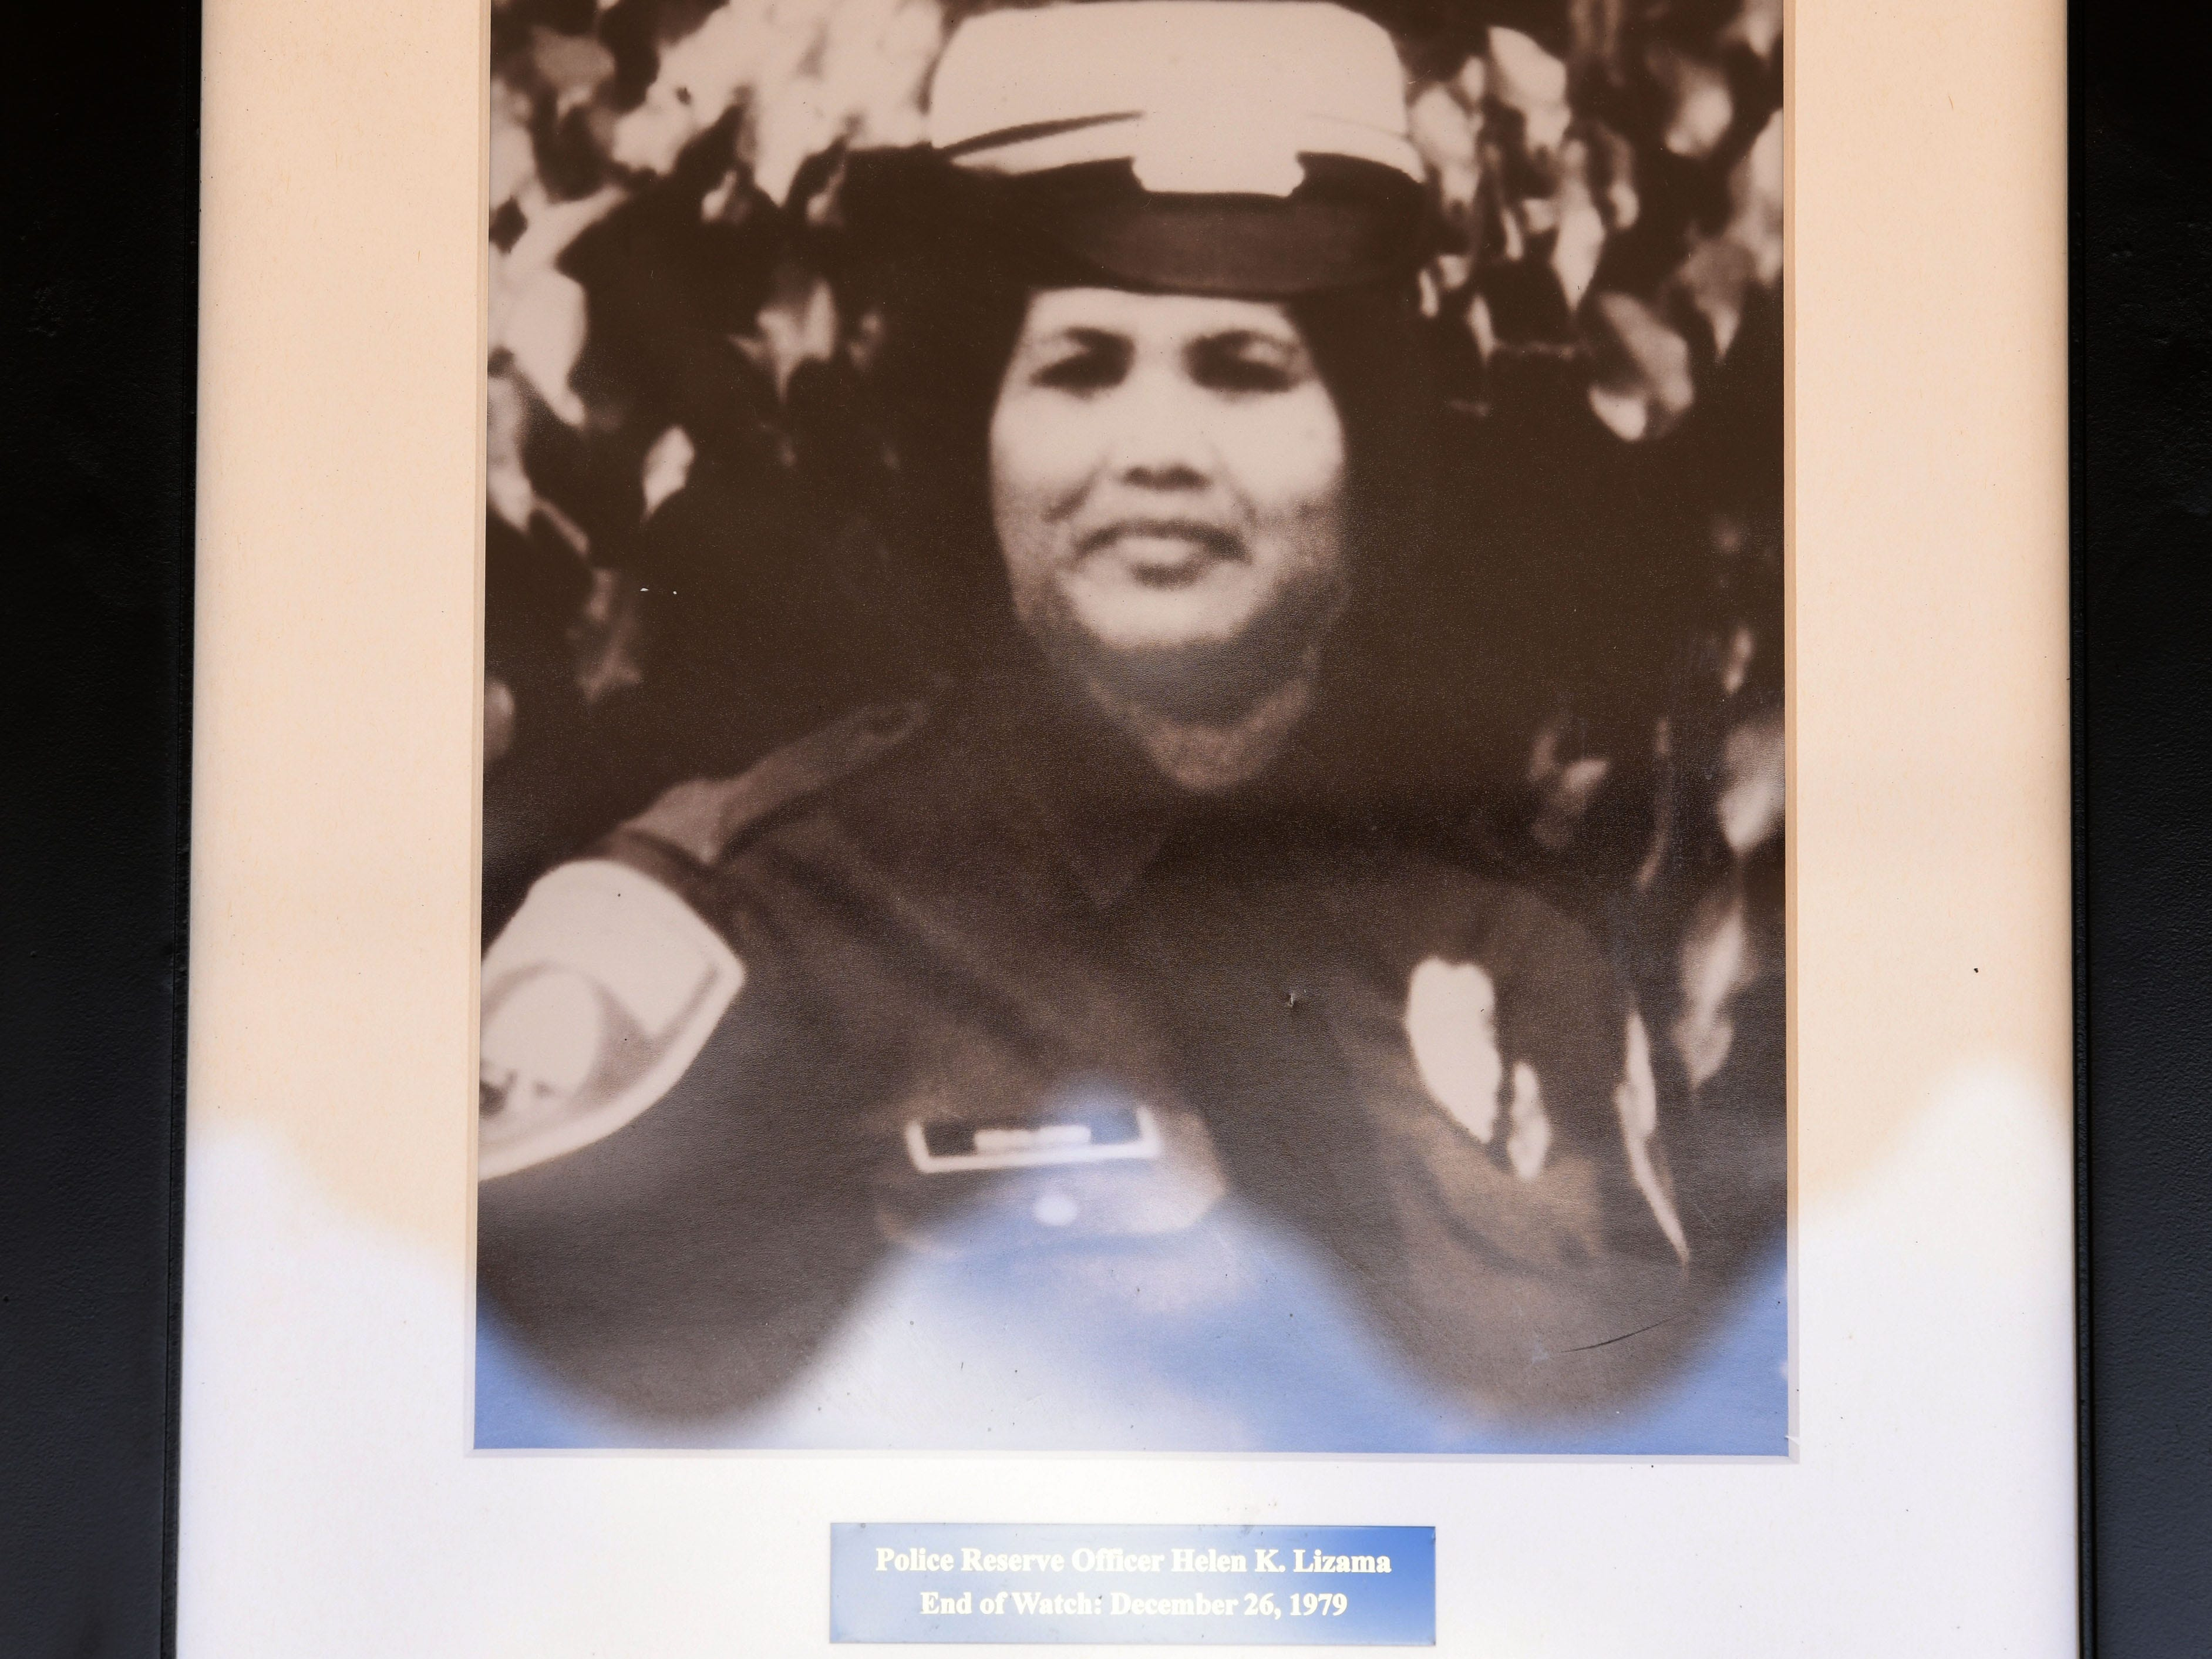 Police Reserve Officer Helen Lizama